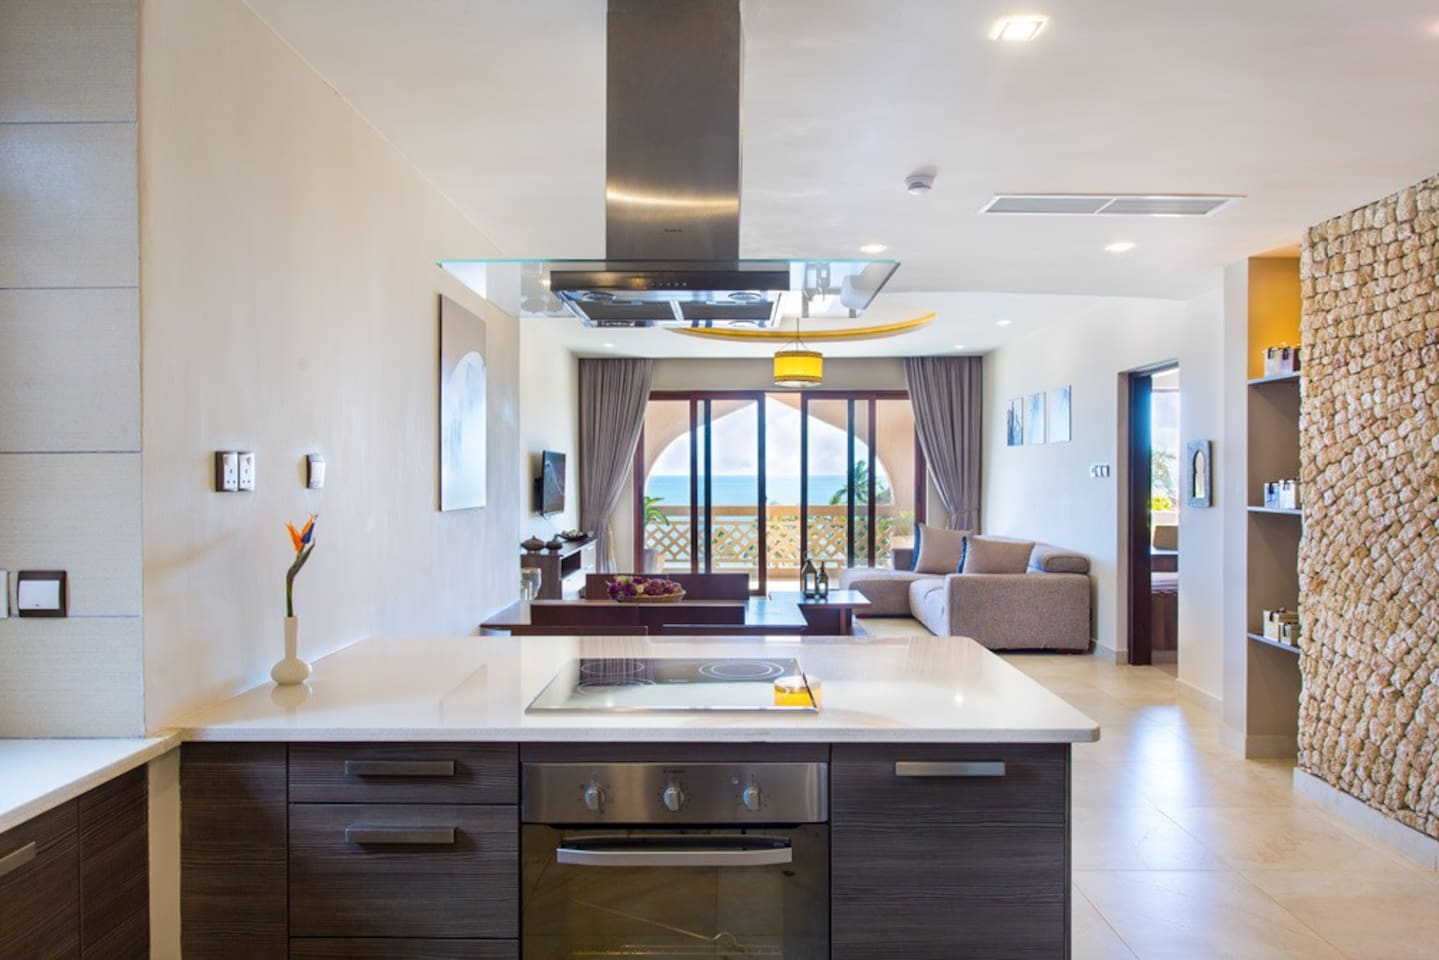 Kitchen and Lounge area